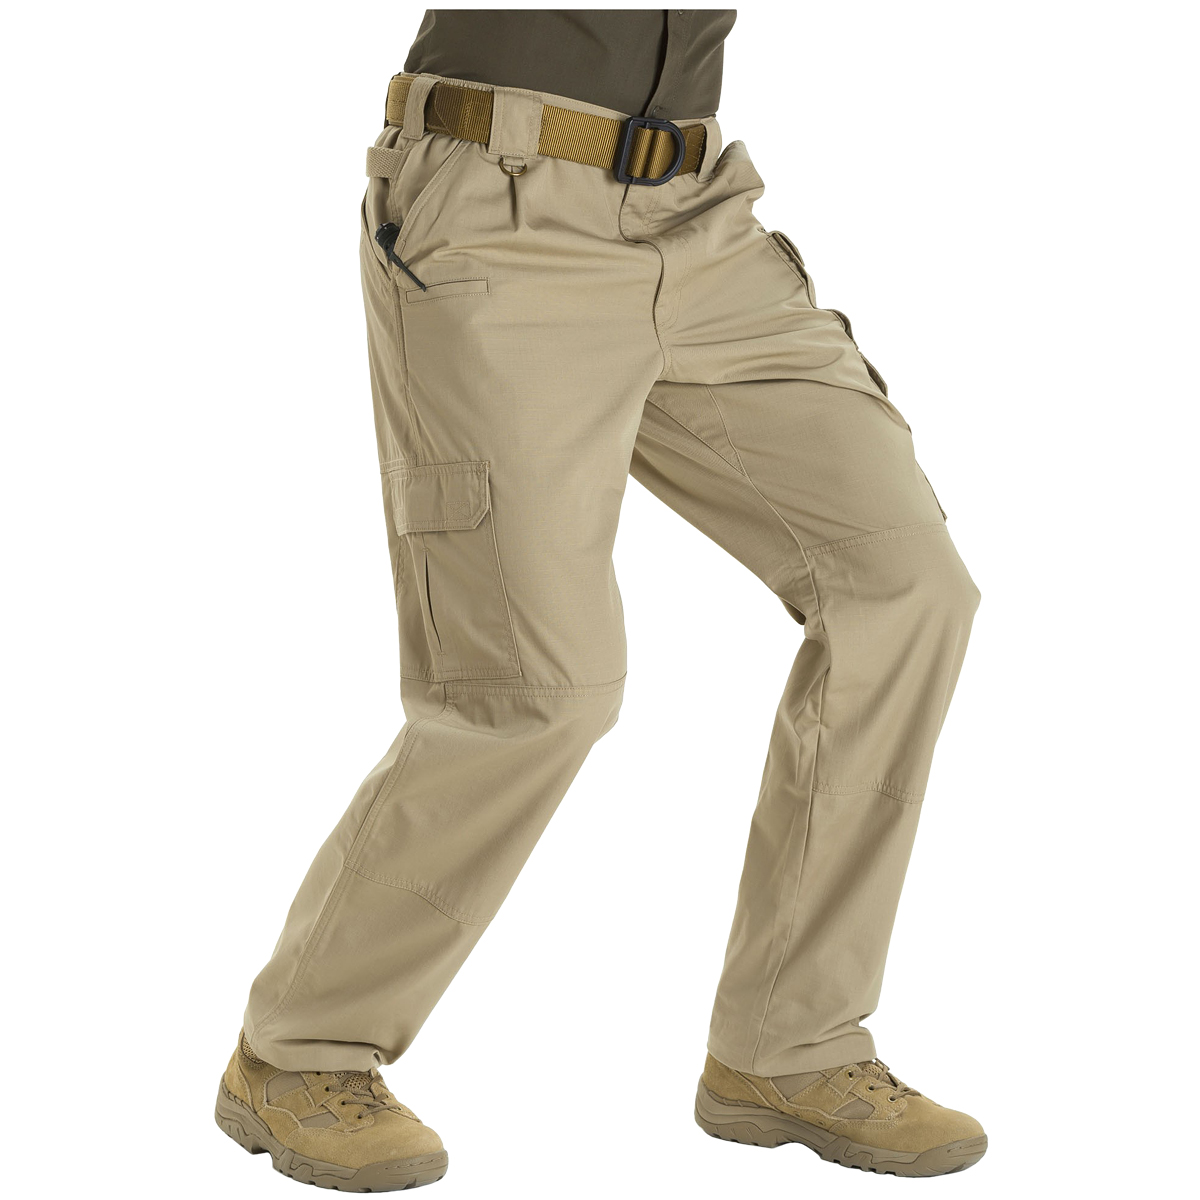 Cargo pants from Tactical include options specially designed for EMS workers, double-front gusseted tactical pants, Taclite Pro cargo, tactical dress uniform cargo, khaki cargo pants, field duty cargo pants, police cargo pants, and cargo pants for shooting.